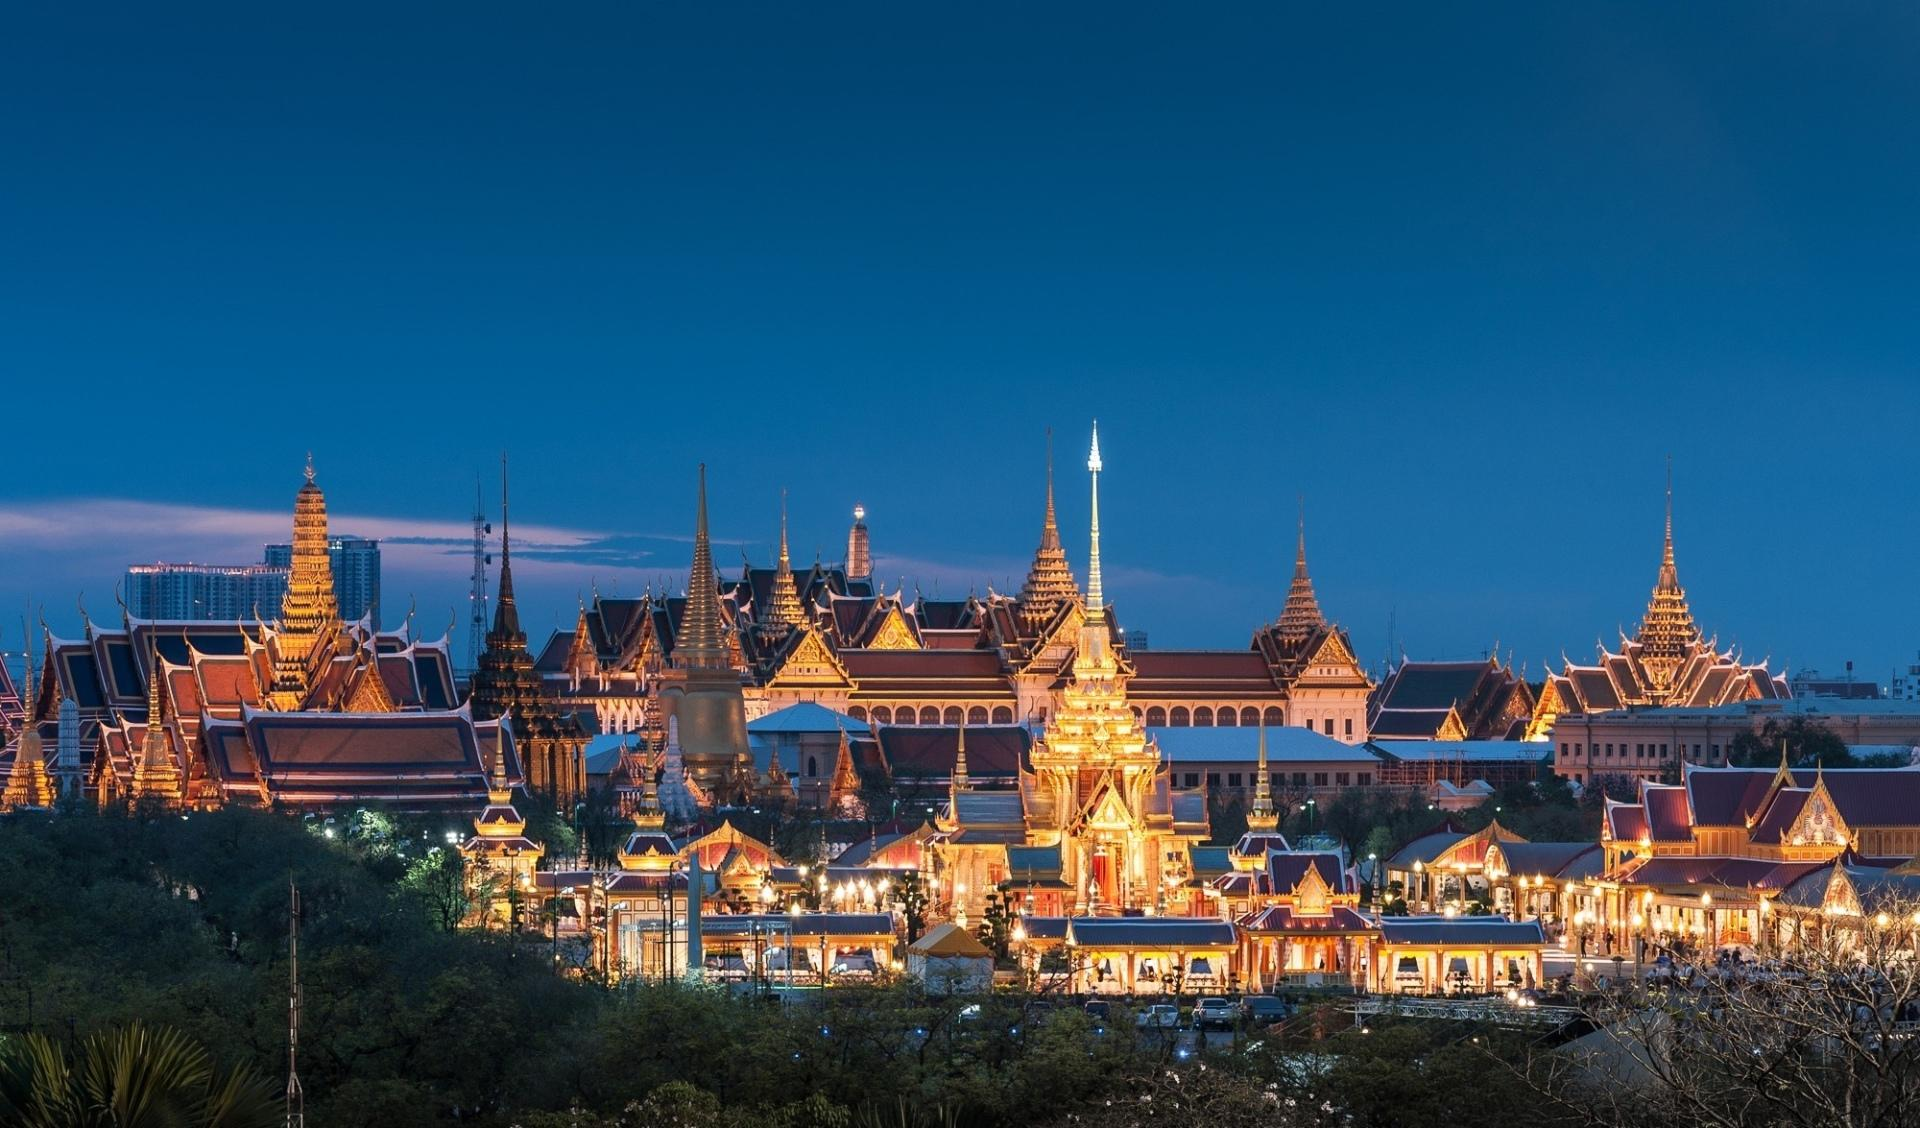 Grand Palace wallpapers HD quality